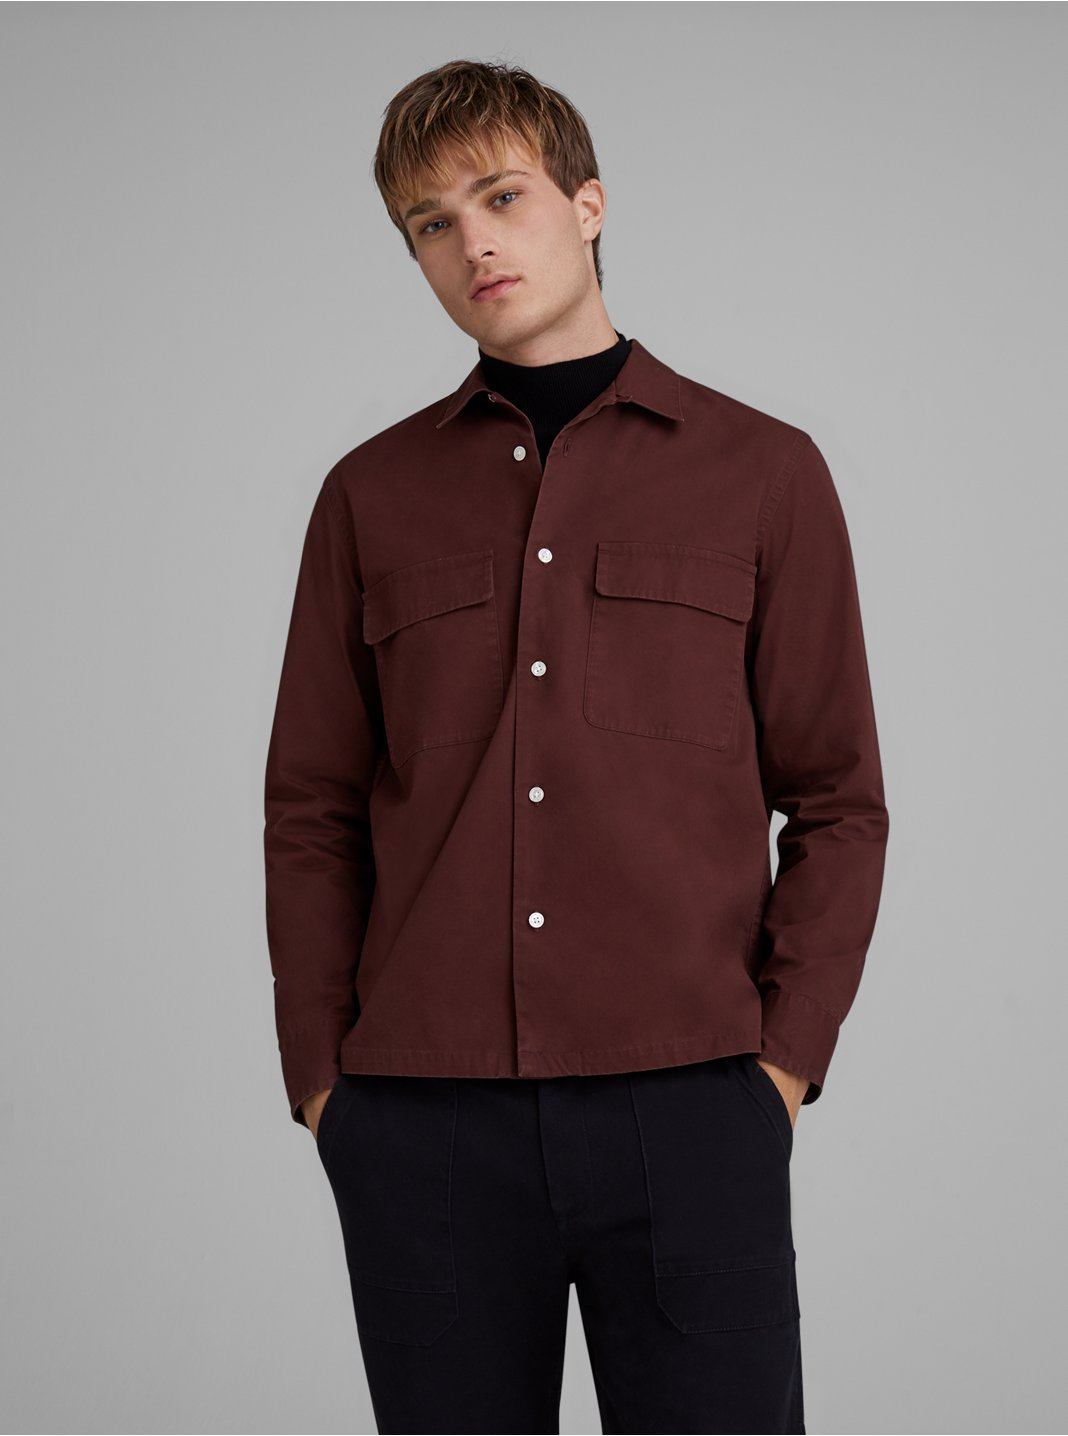 Loop Collar Workshirt